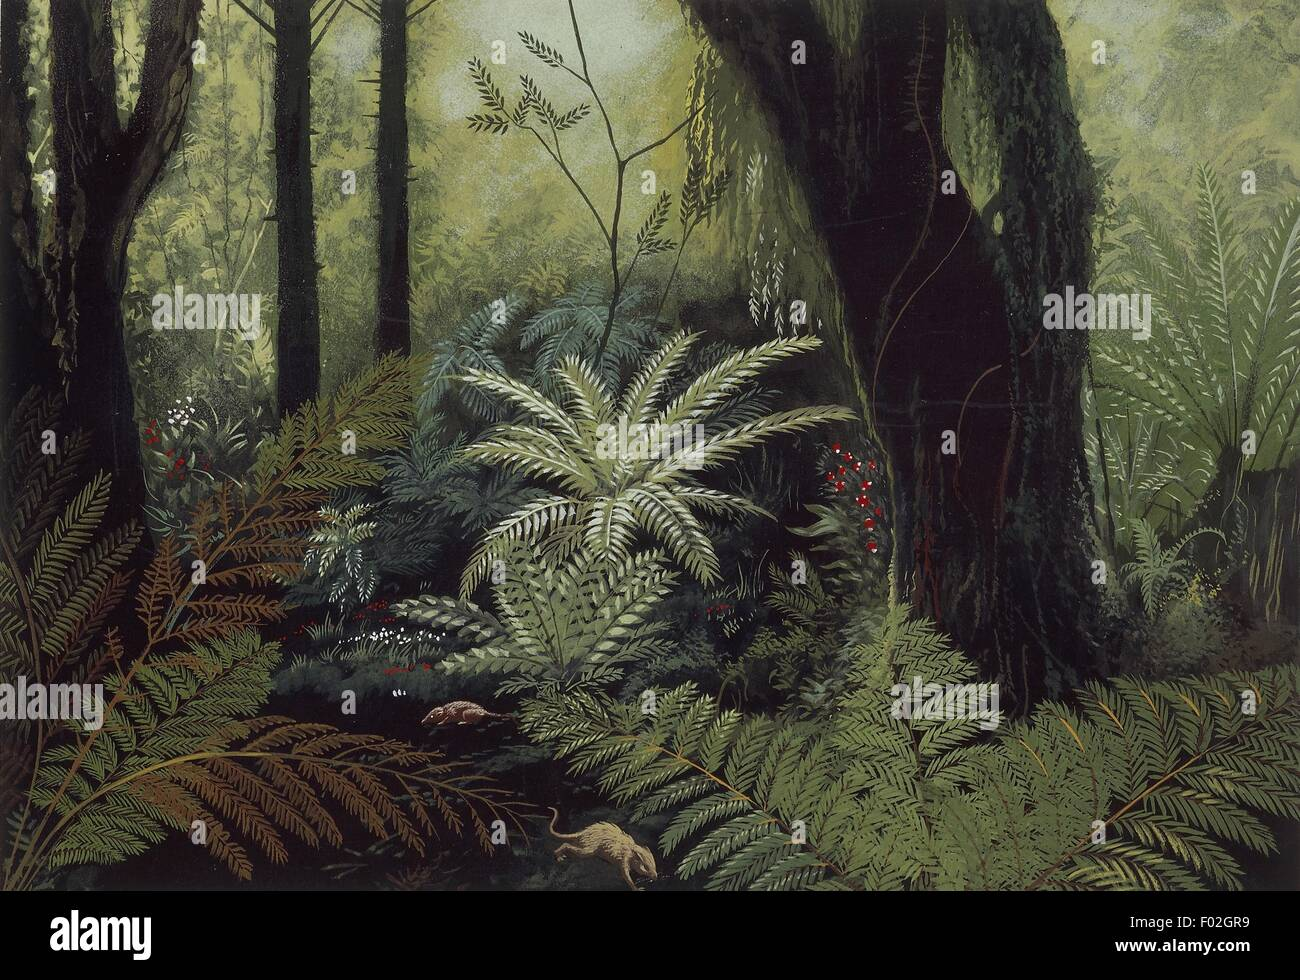 Reconstruction of prehistoric environment, illustration - Stock Image